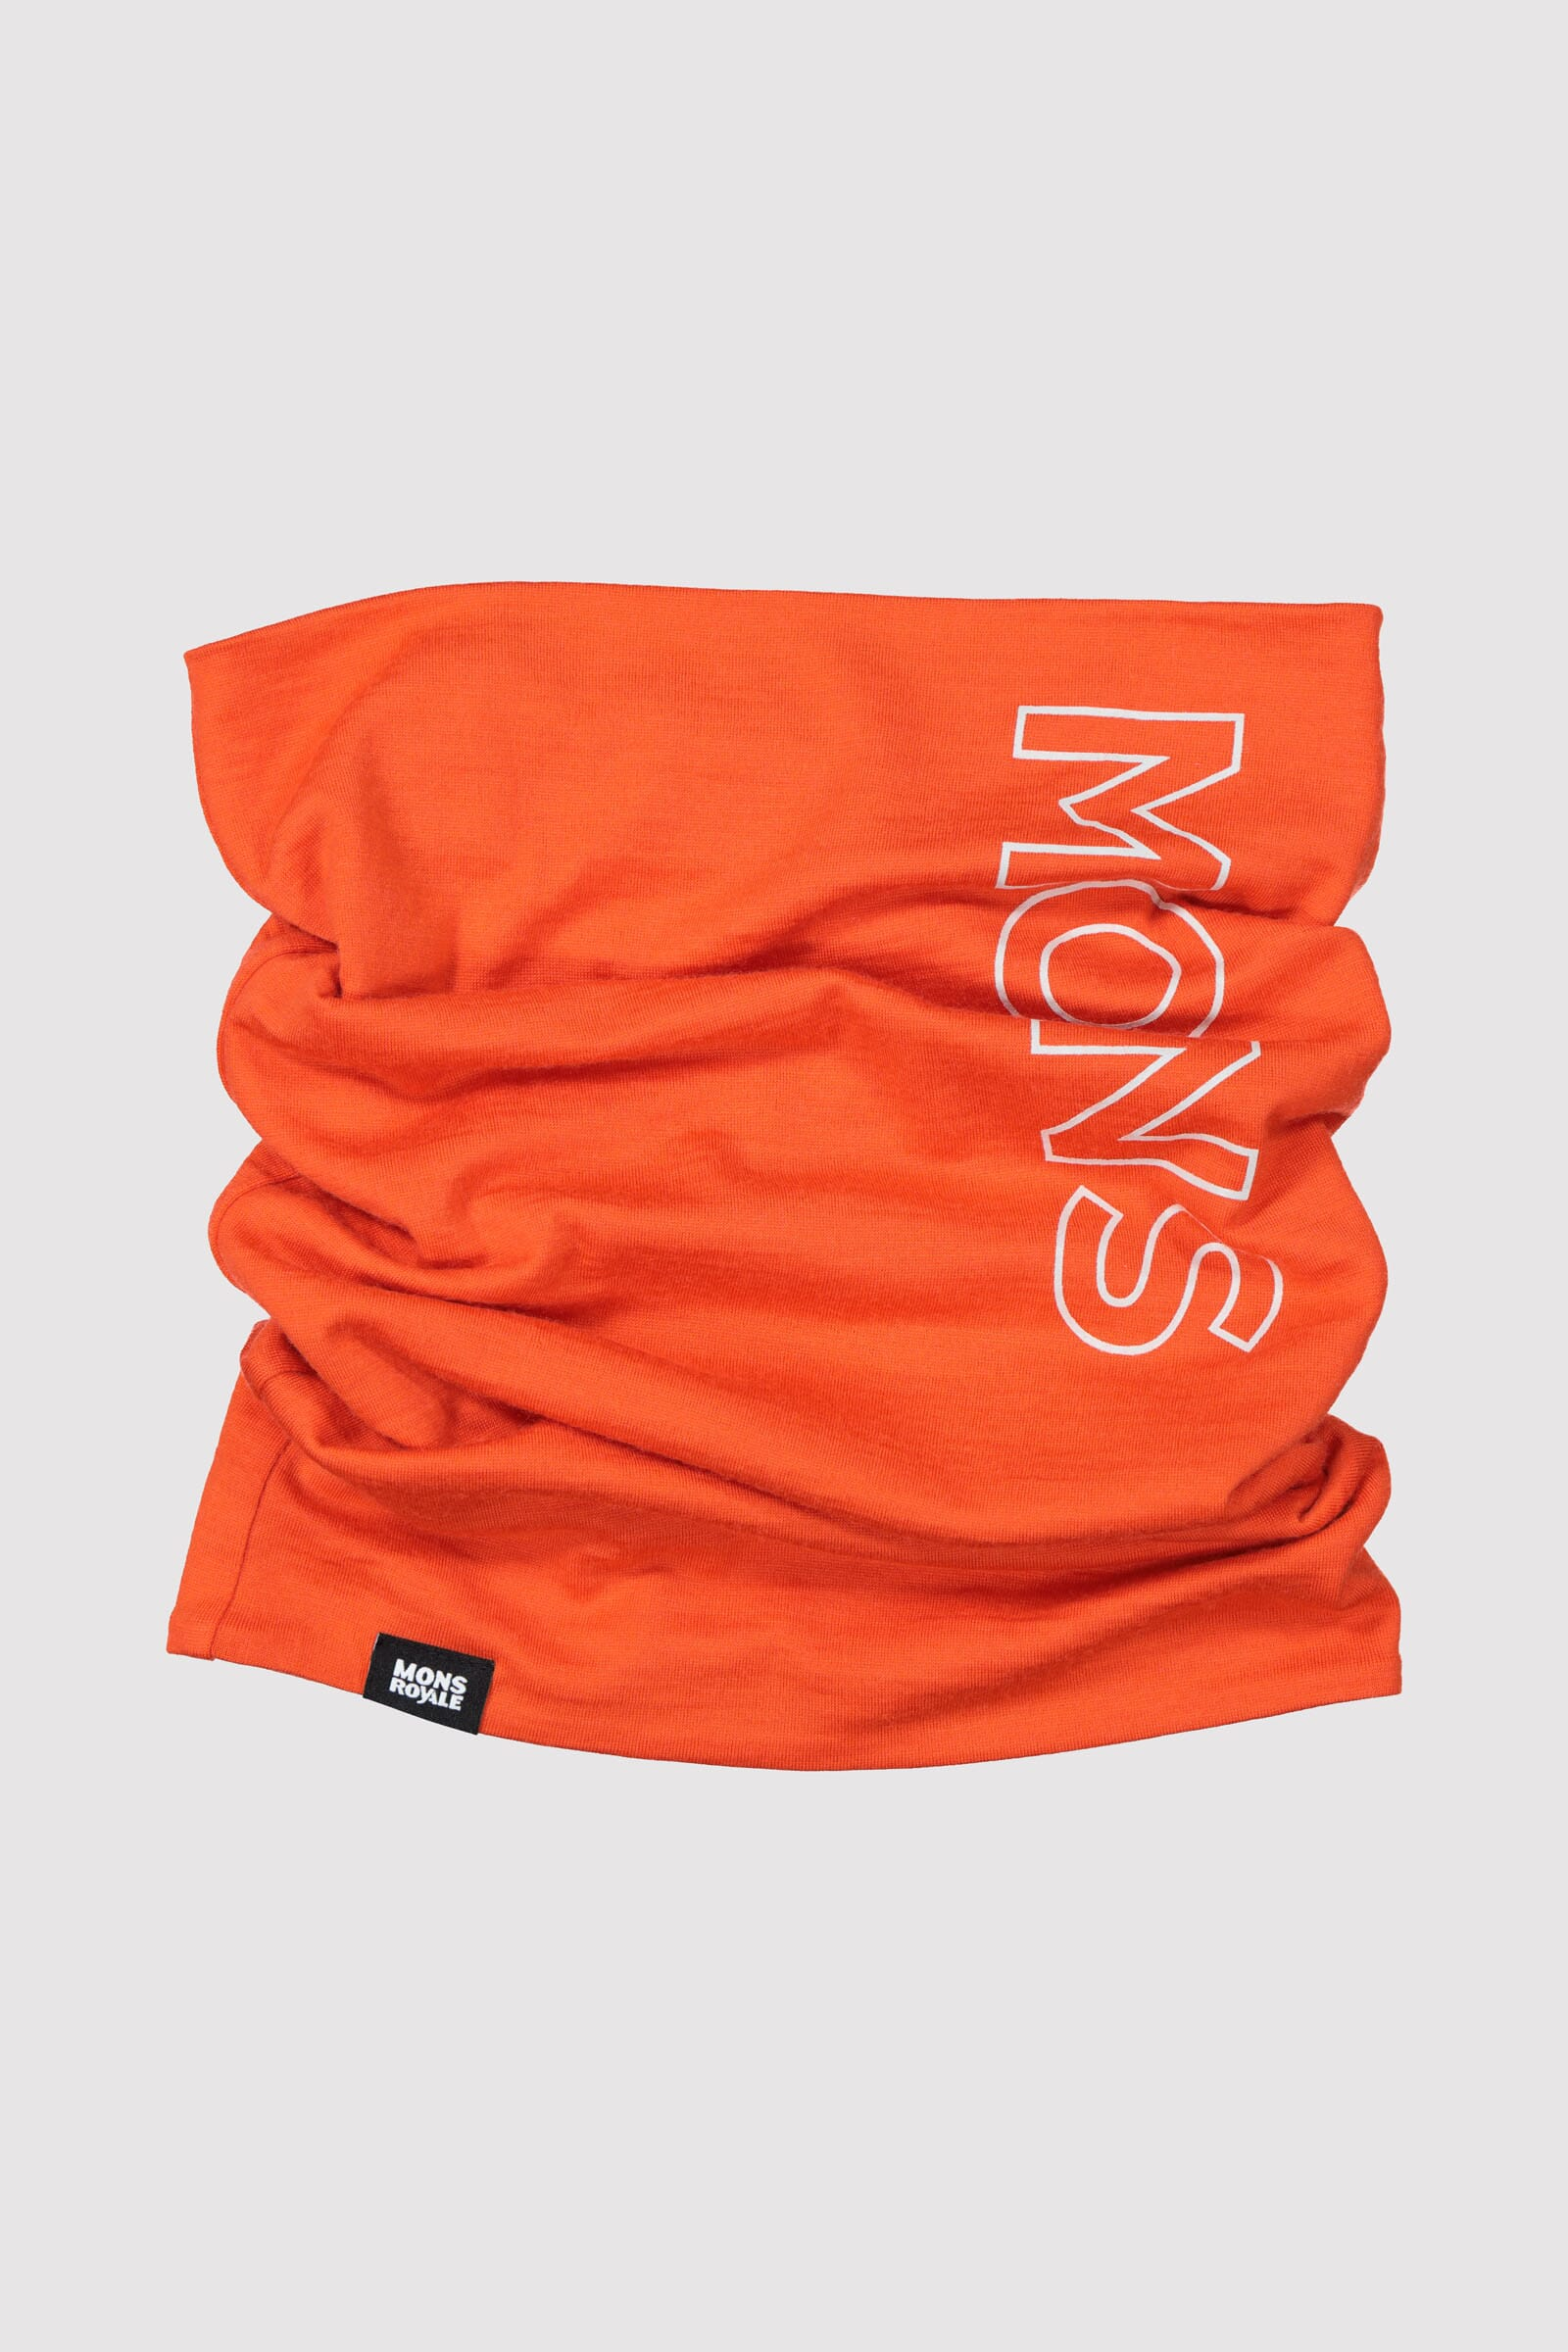 Double Up Neckwarmer - Orange Smash